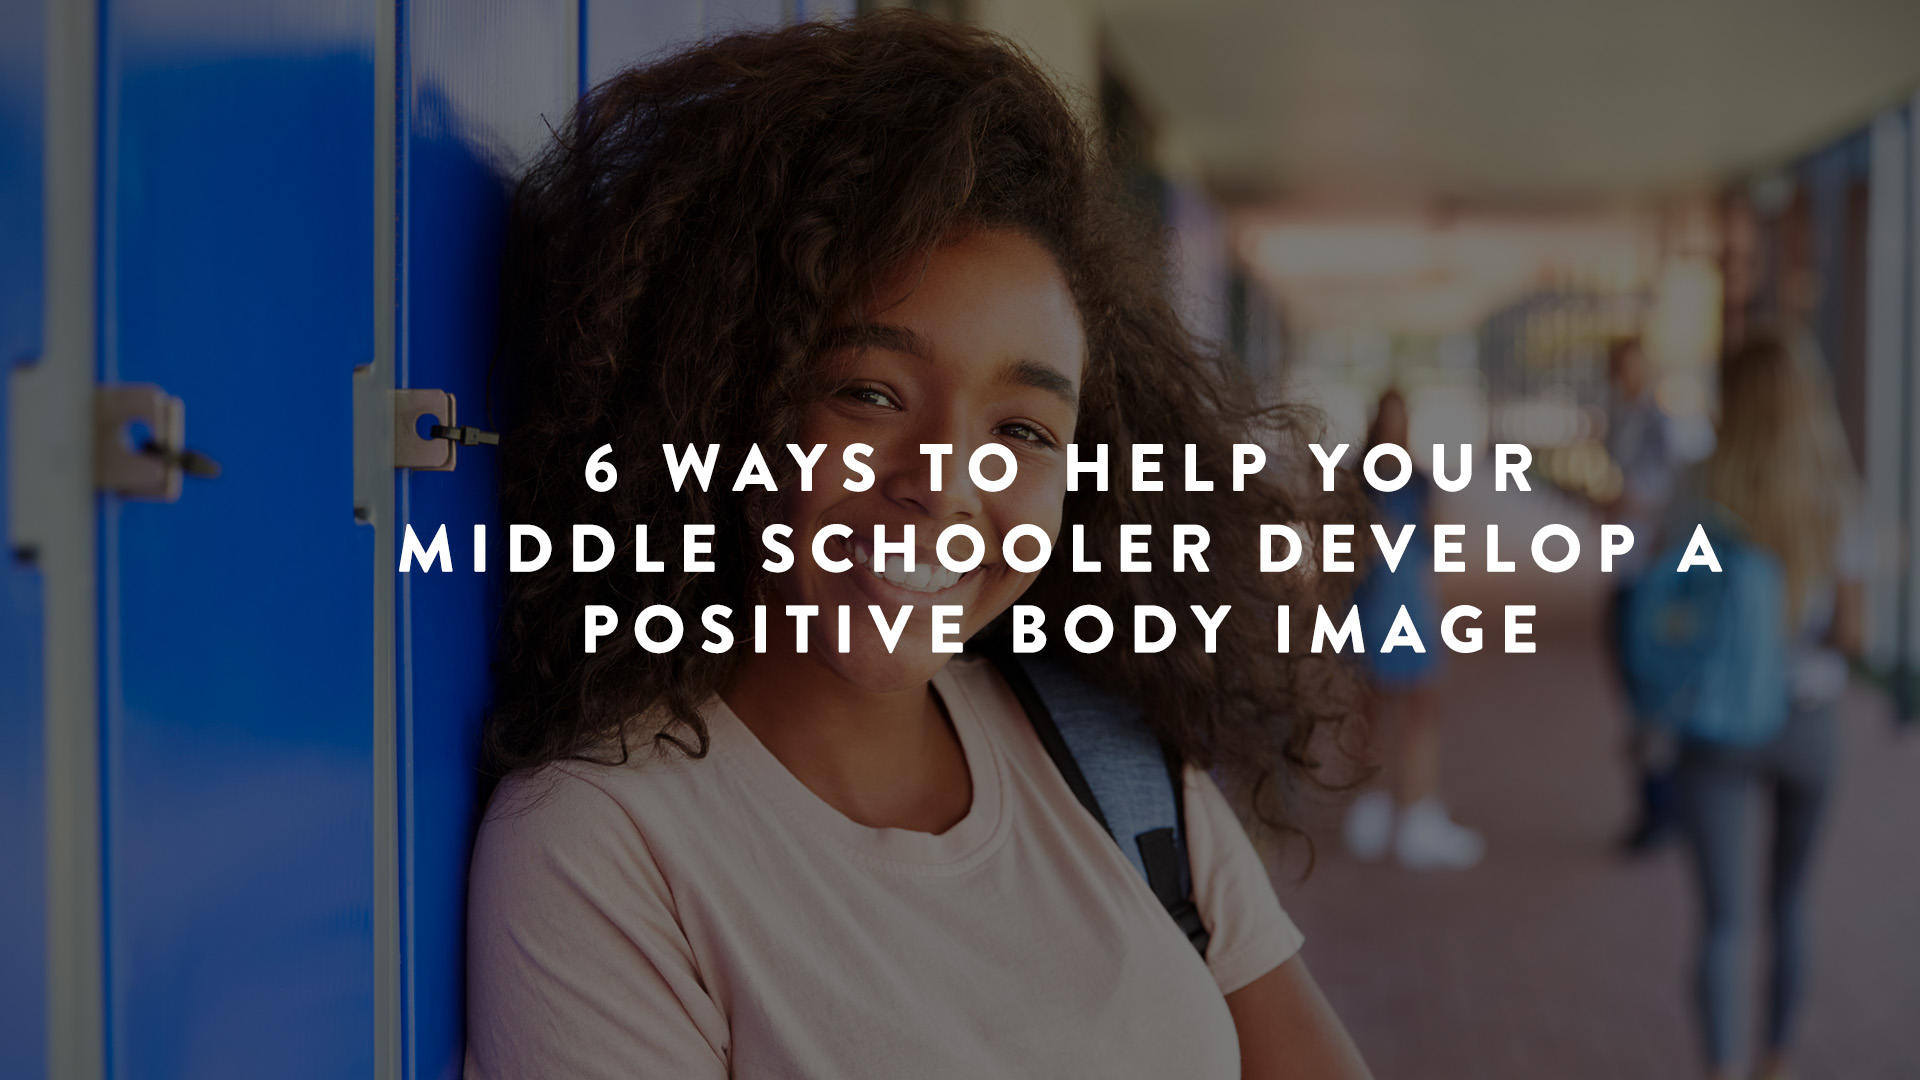 6 ways to help middle schoolers develop positive body image